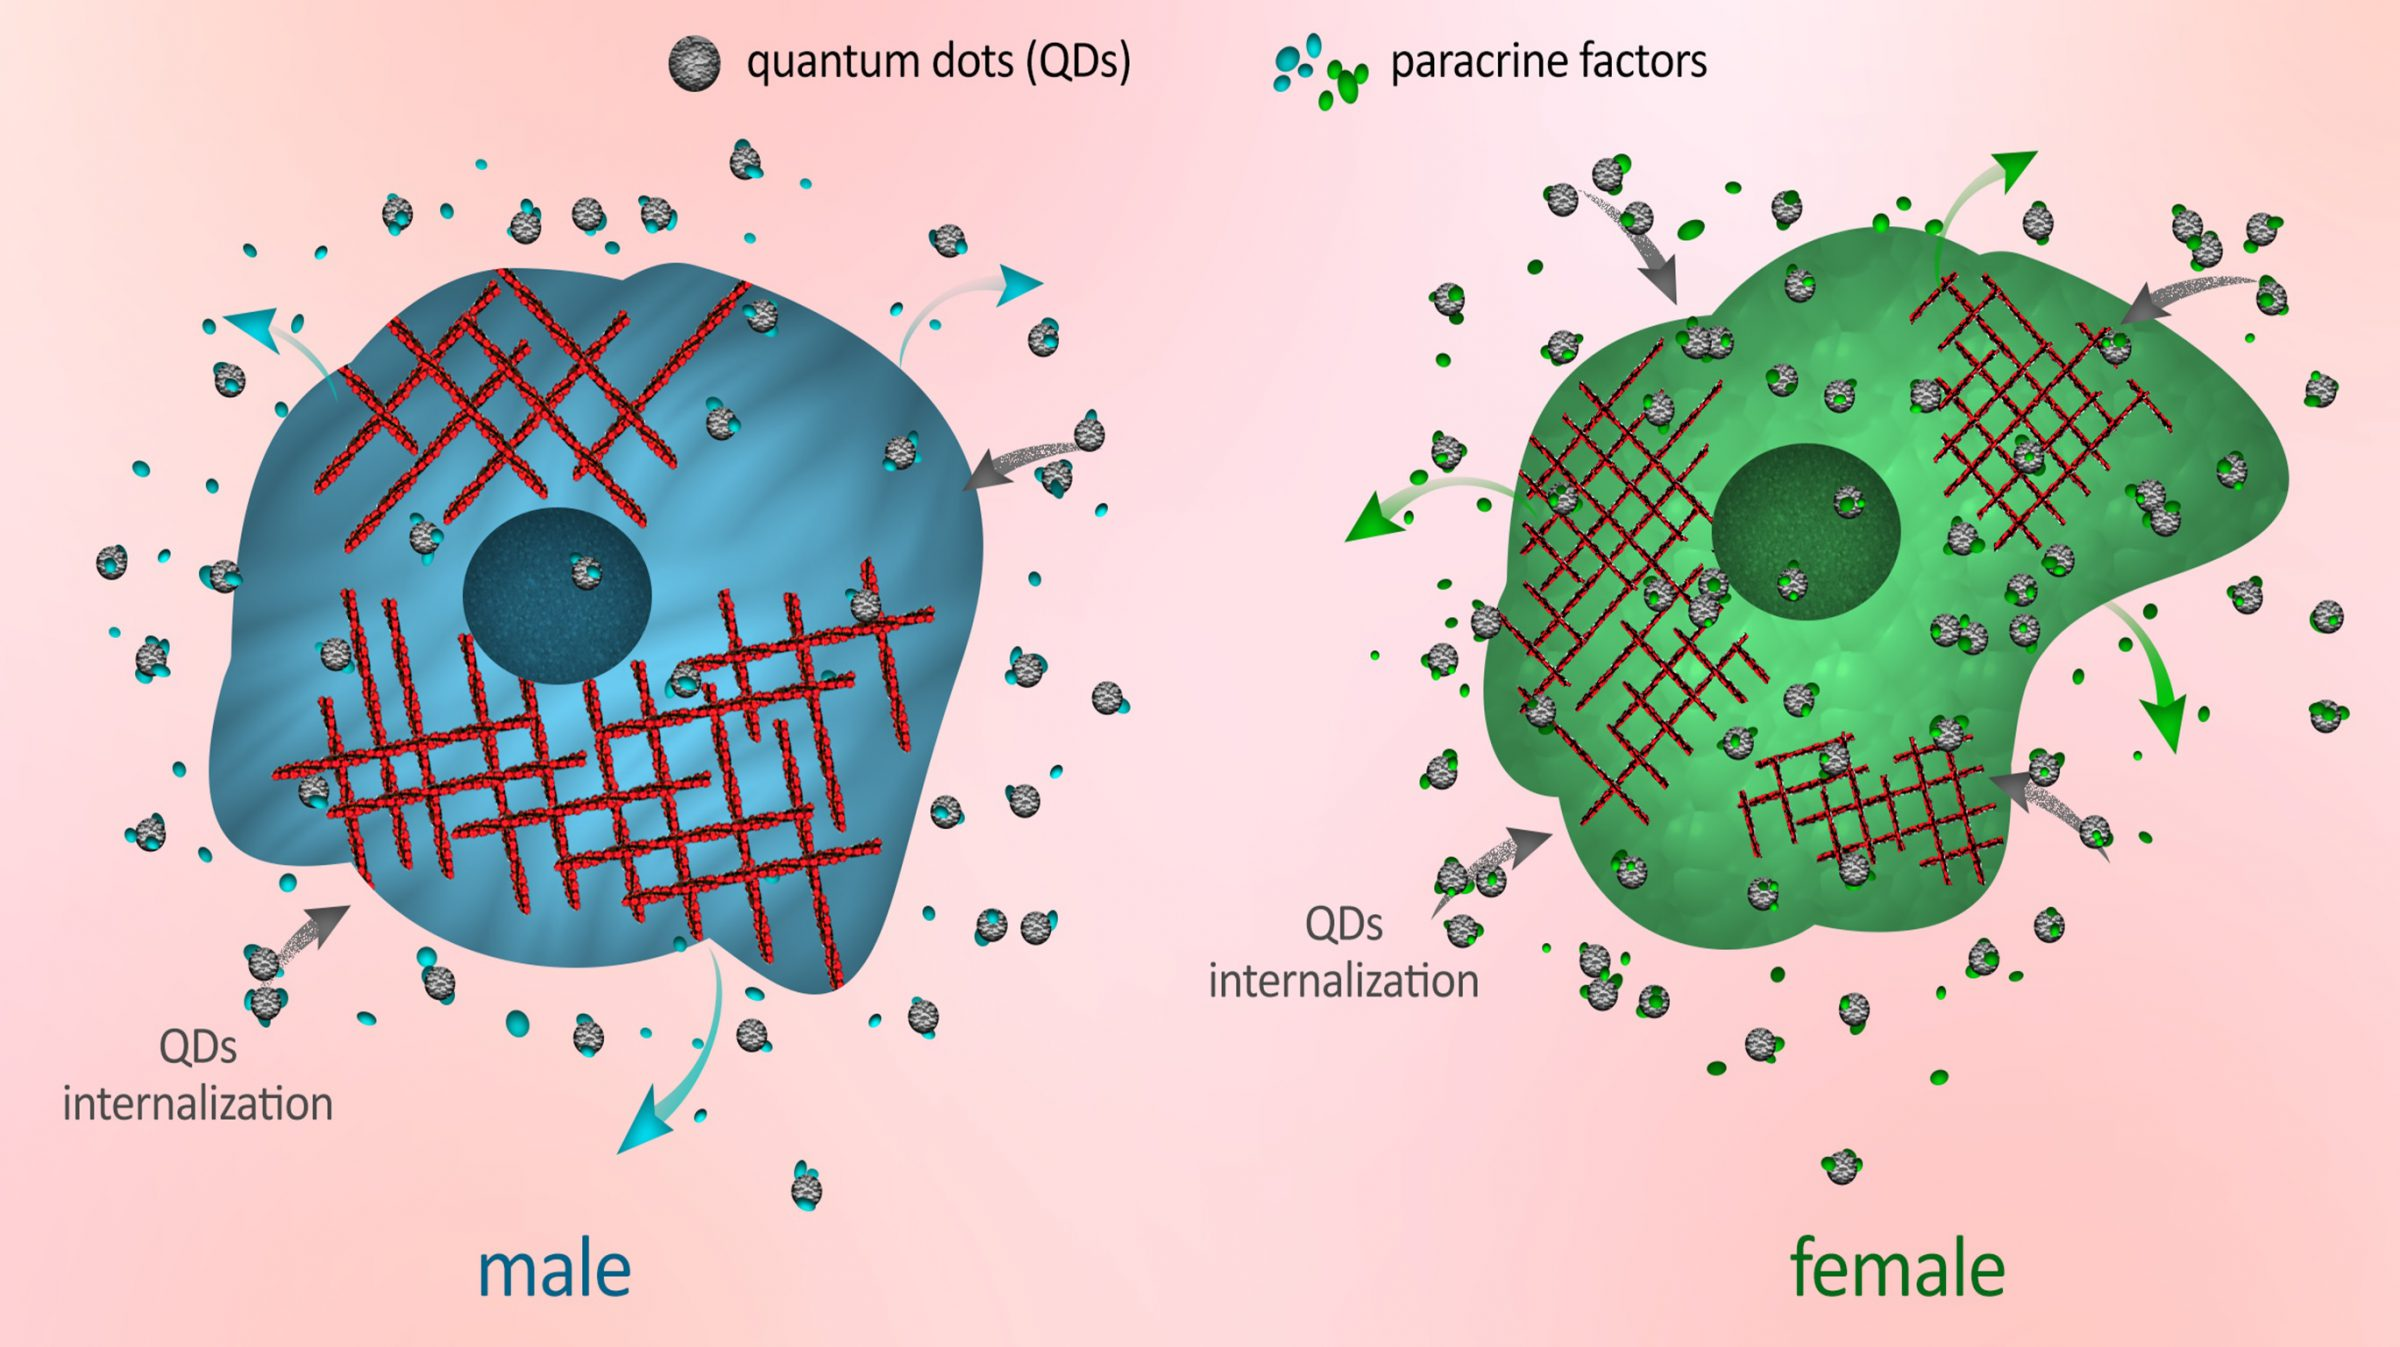 Graphic of quantum dots in male and female cells